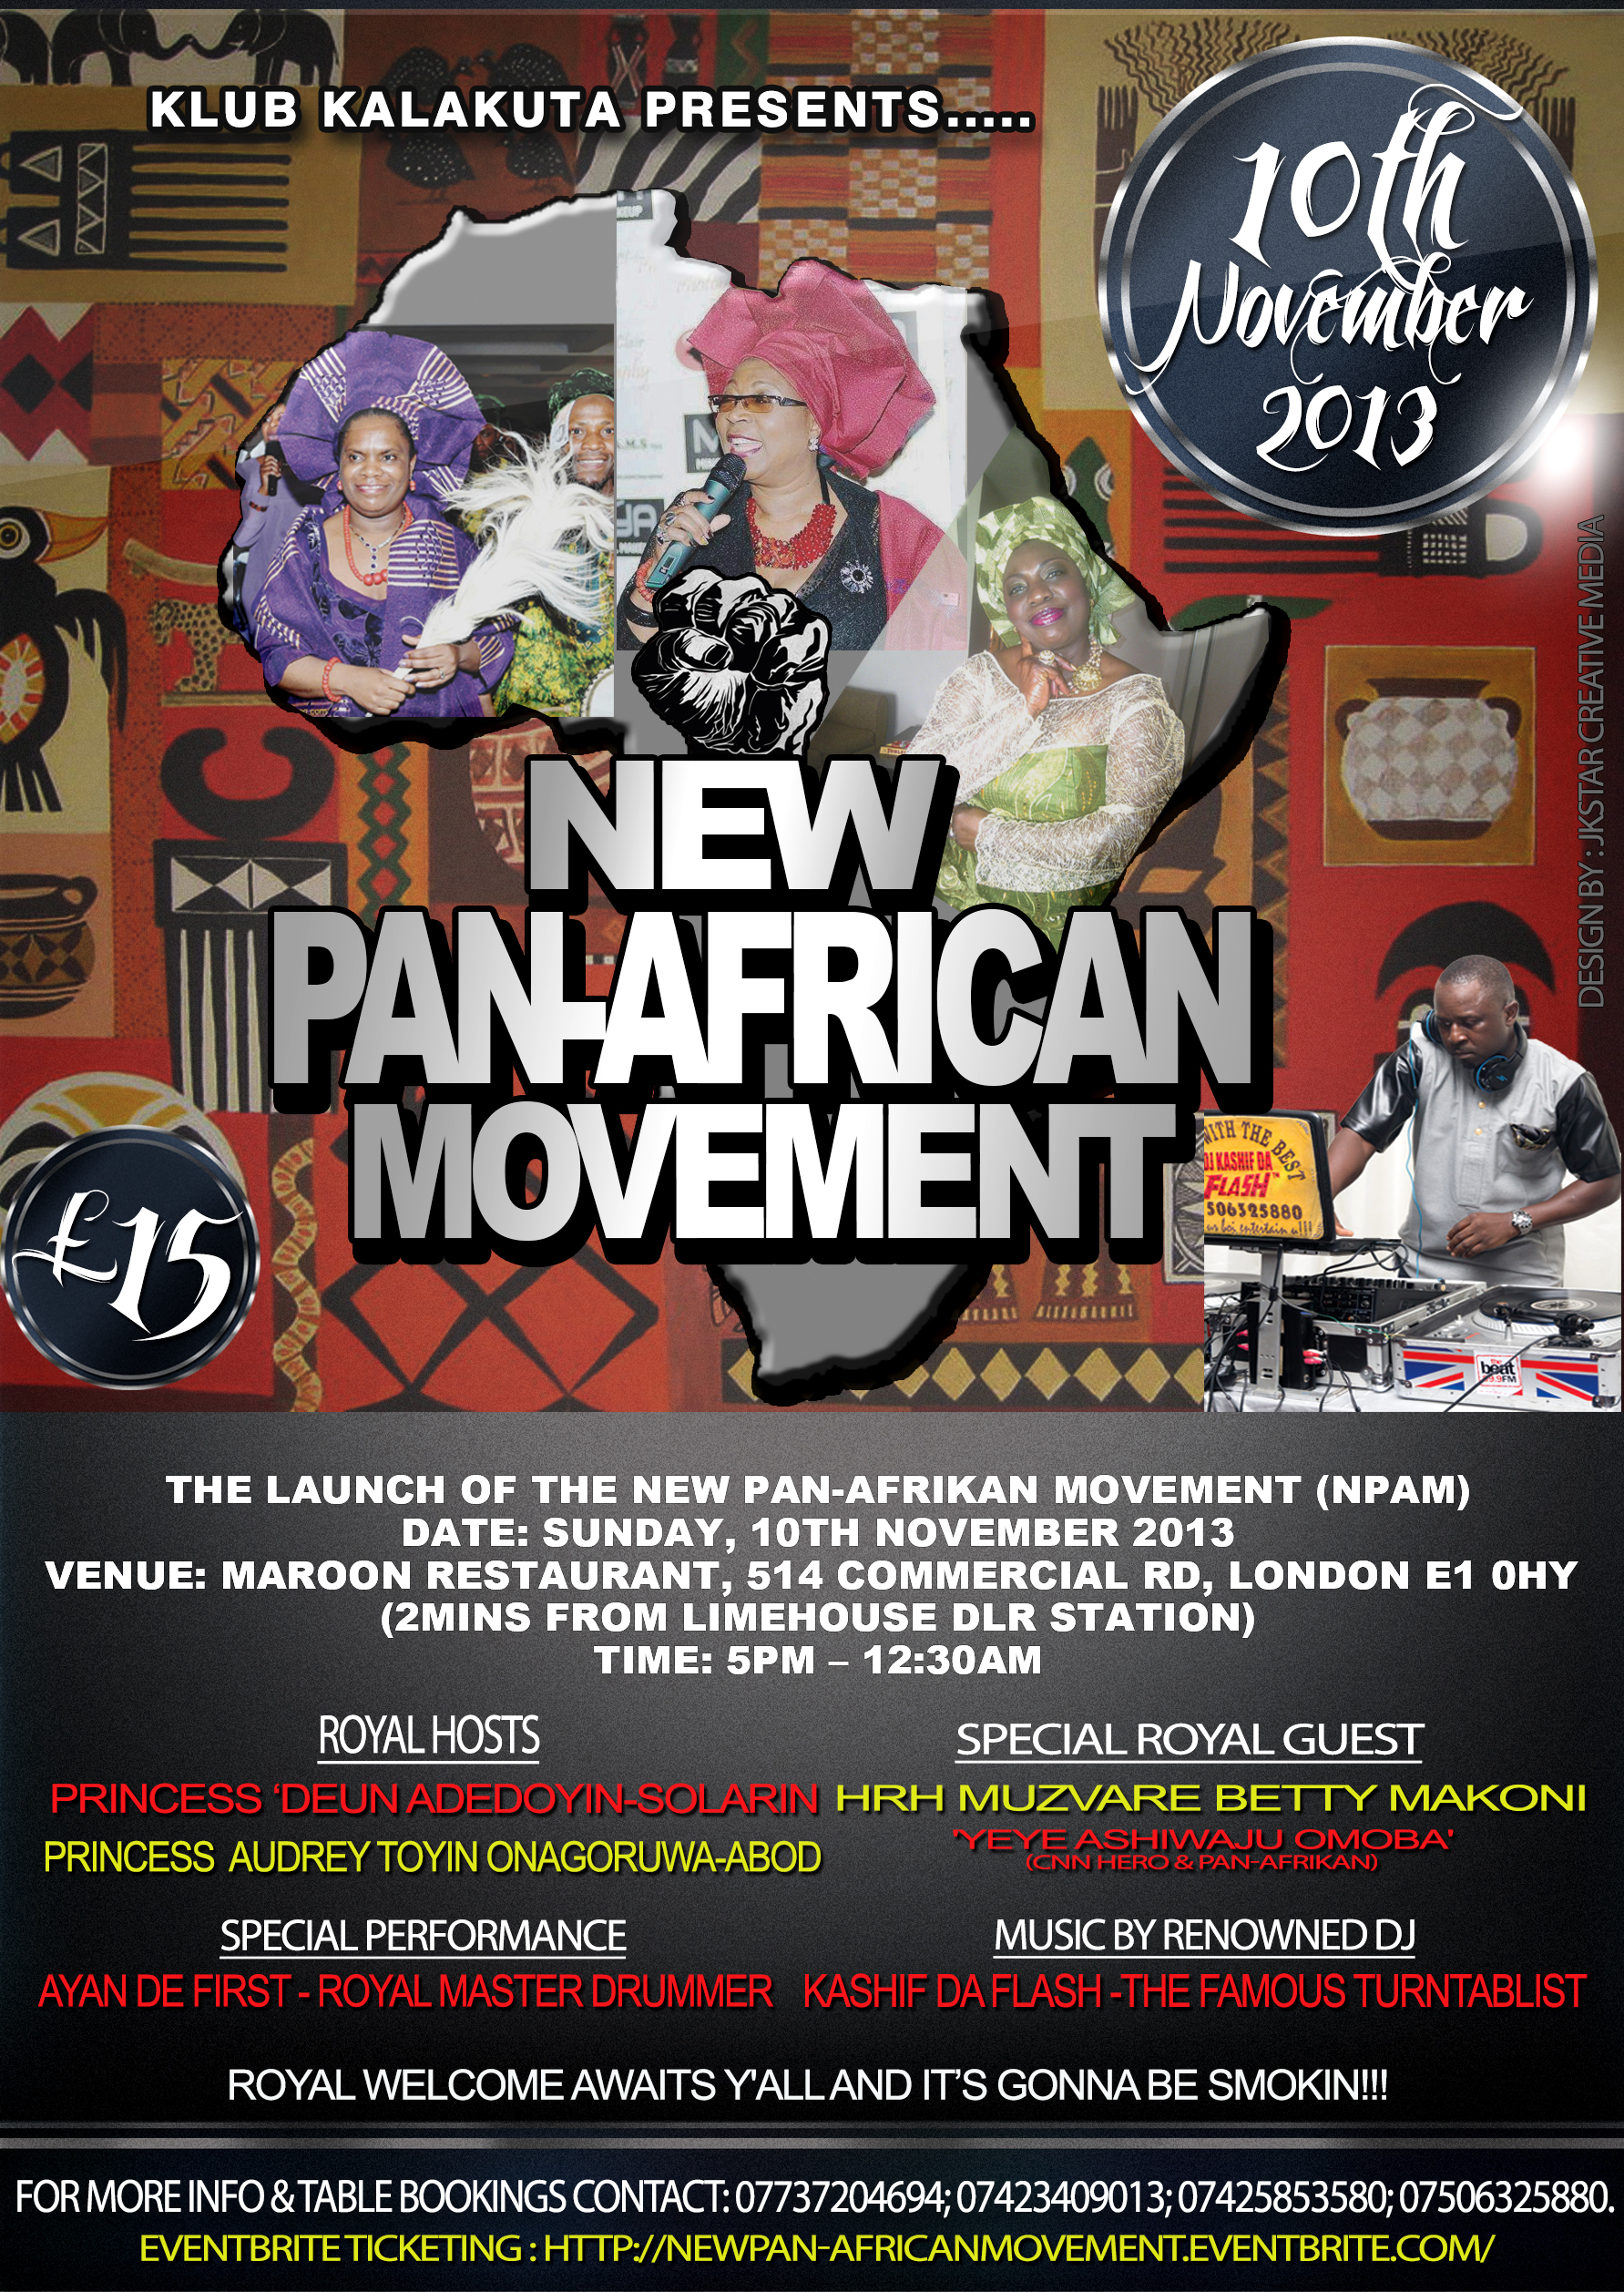 NEW PAN-AFRICAN MOVEMENT